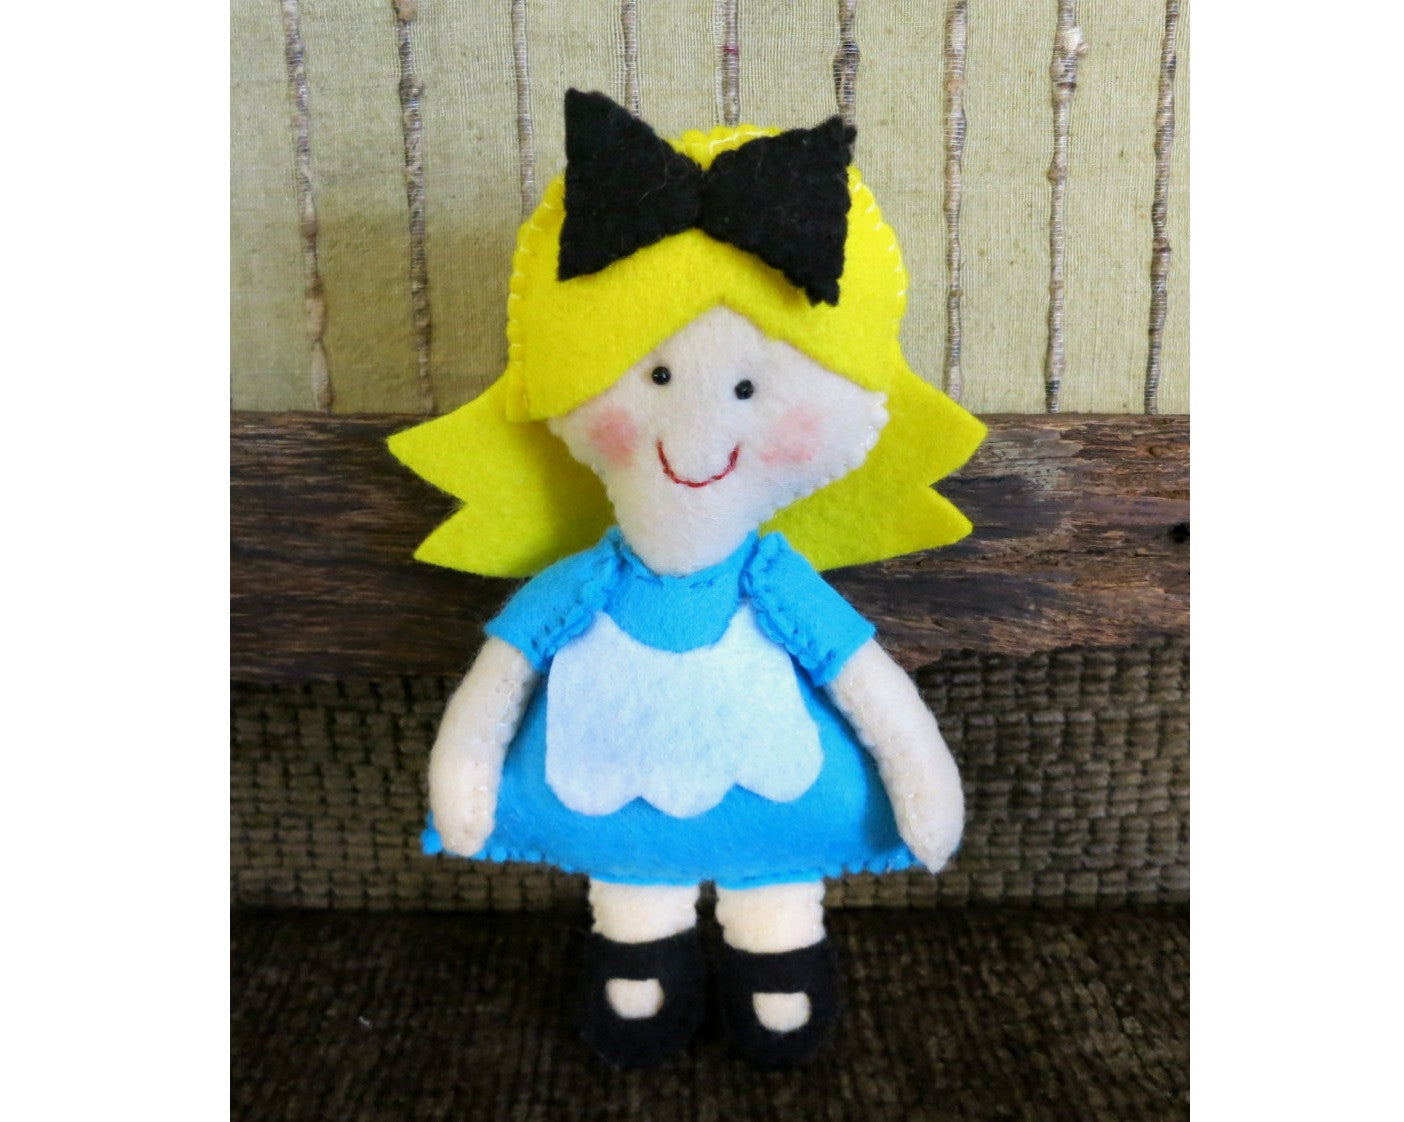 Alice-in-Wonderland-Stuffed-Toy-Nchanted-Gifts